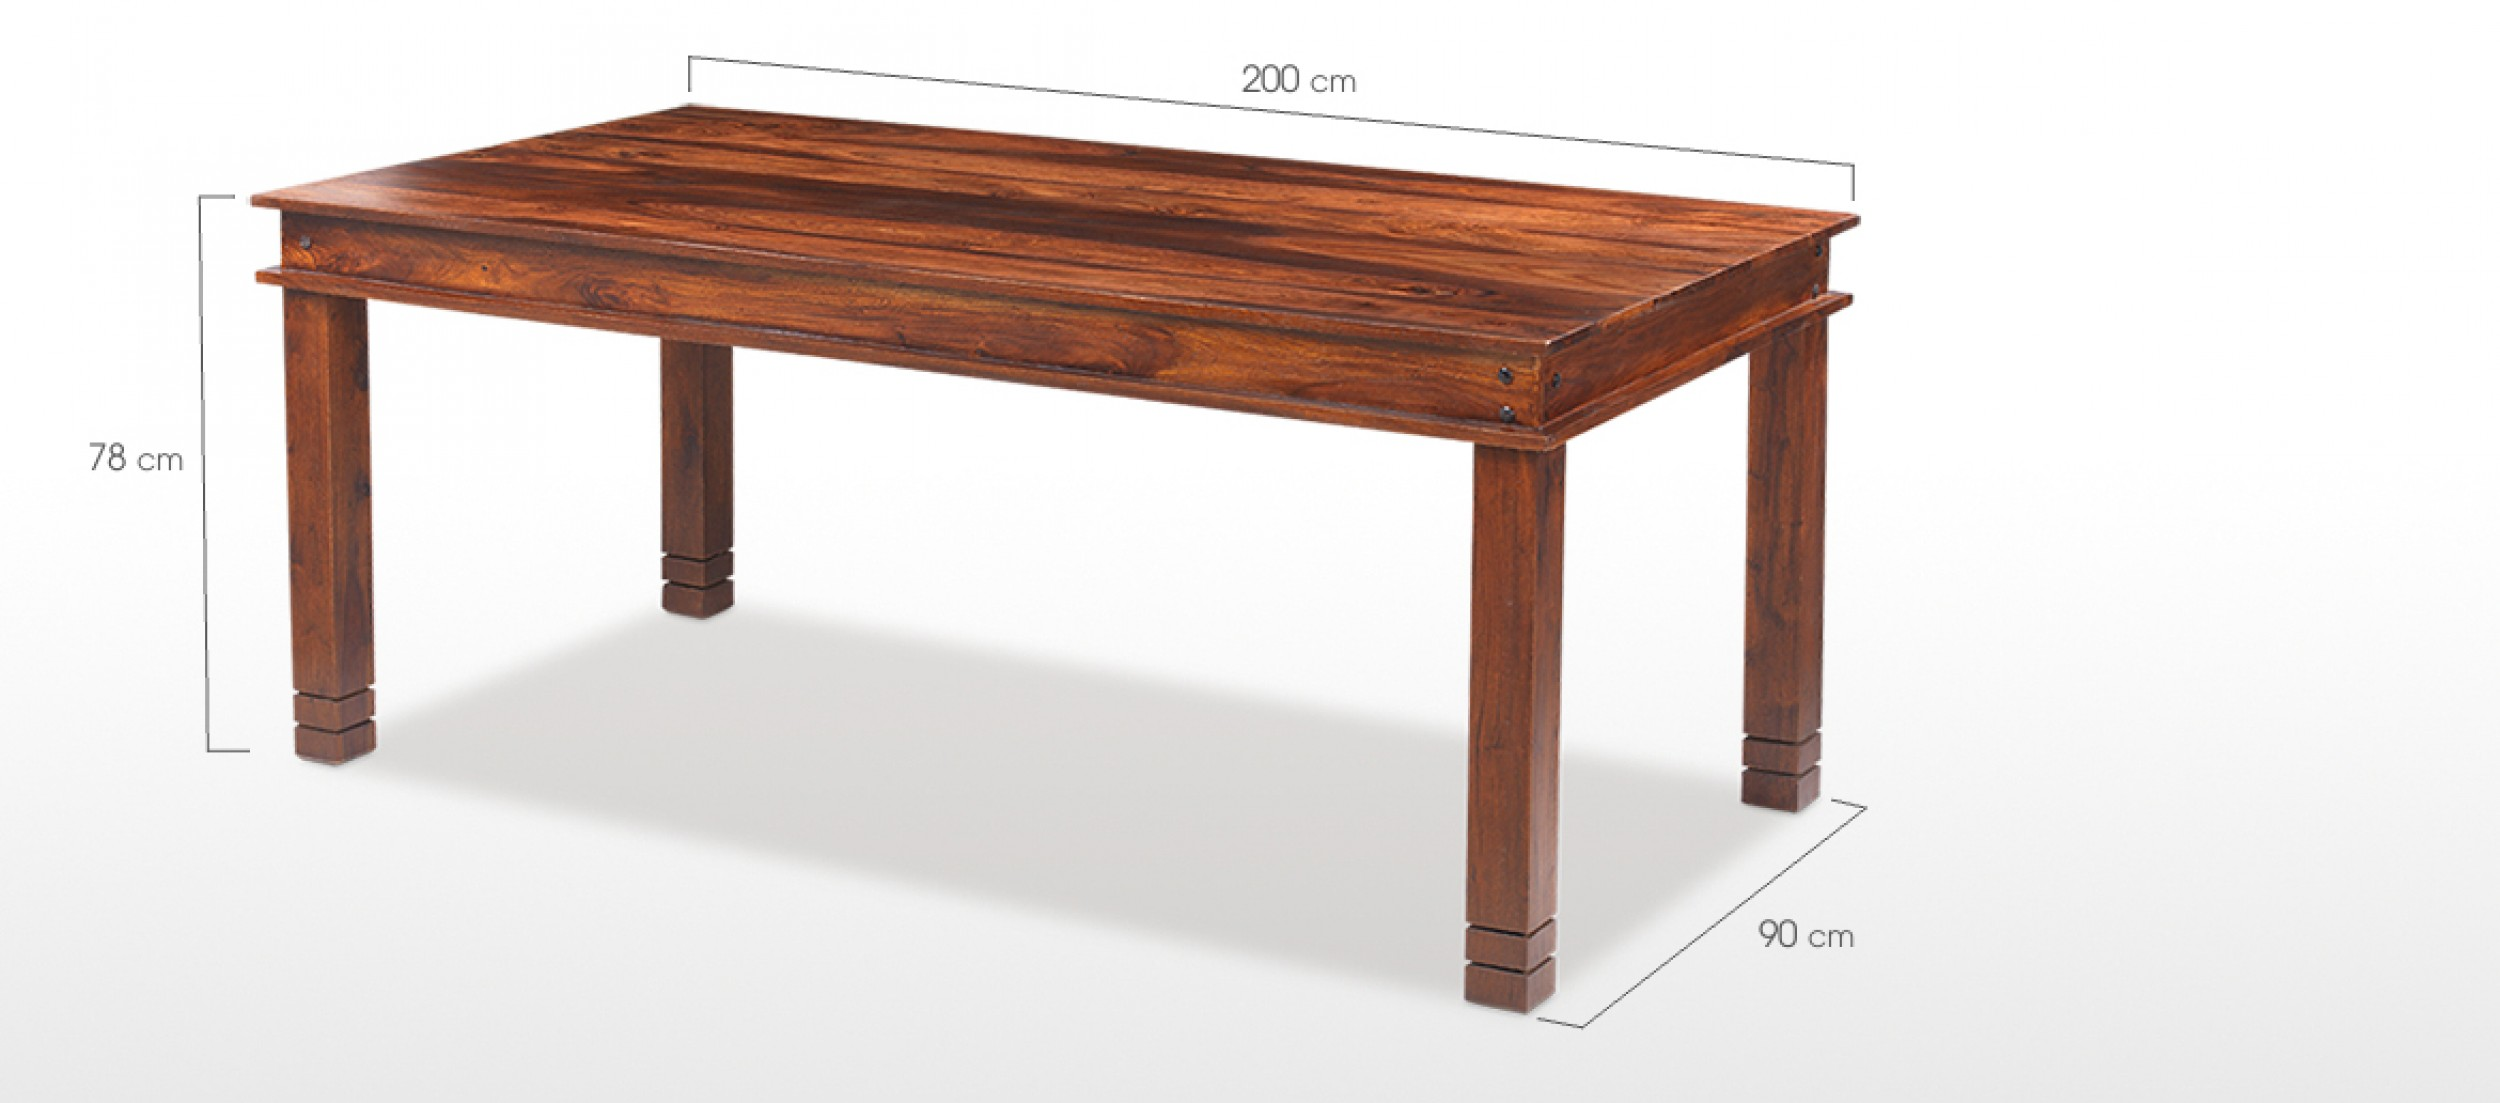 Dining Table For 20 Dimensions: Jali Sheesham 200 Cm Chunky Dining Table And 8 Chairs